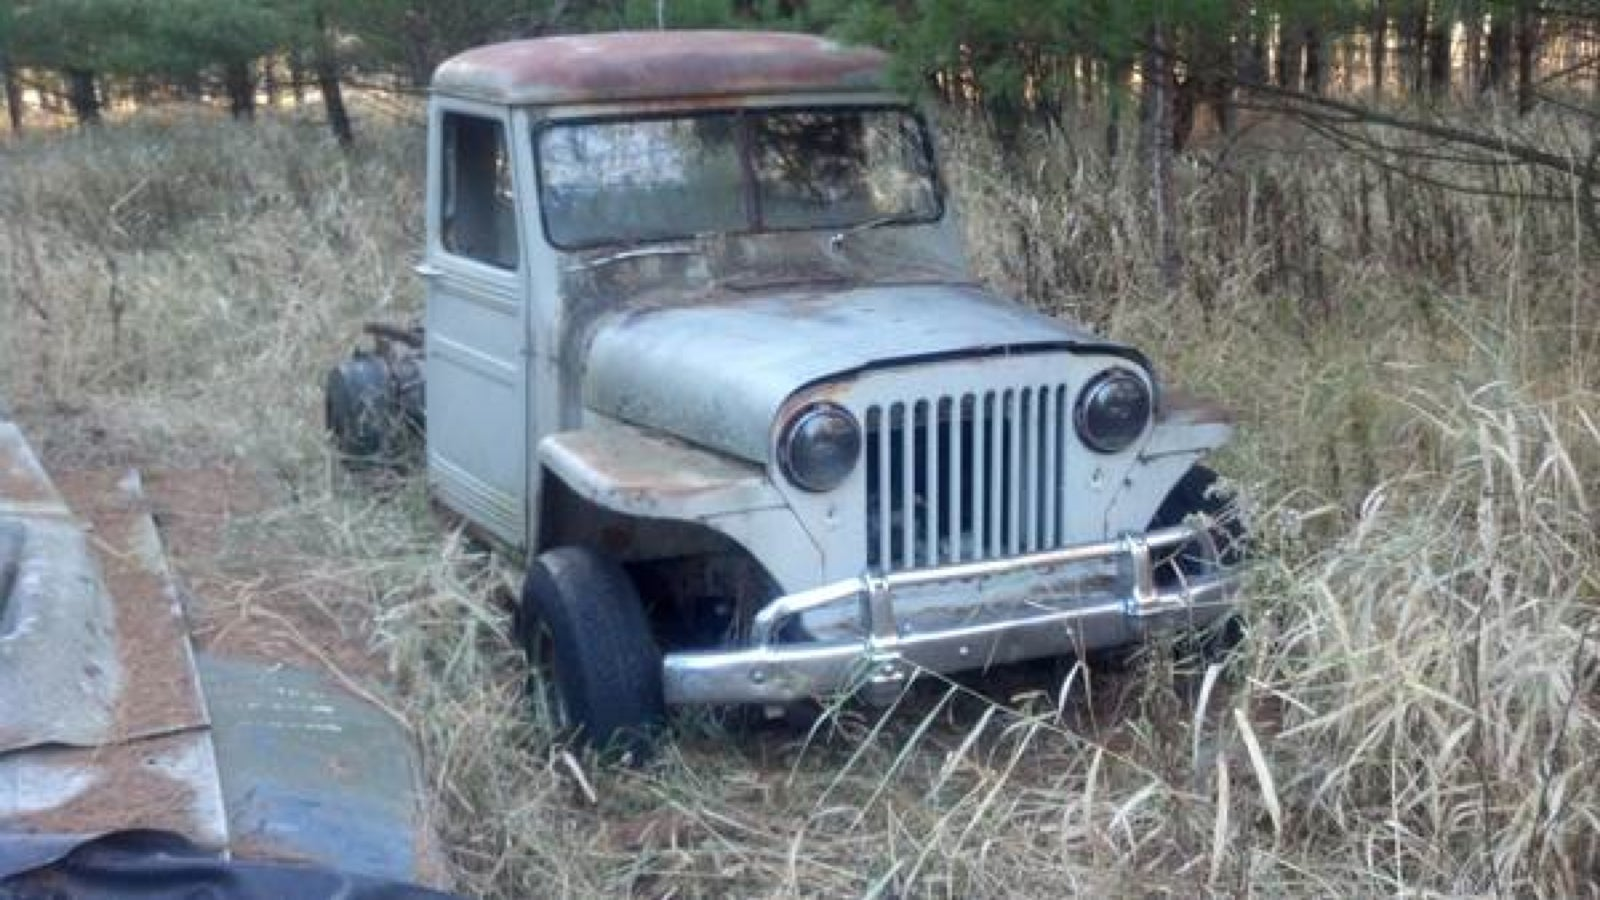 Willys Pickup For Sale Craigslist Autos Weblog